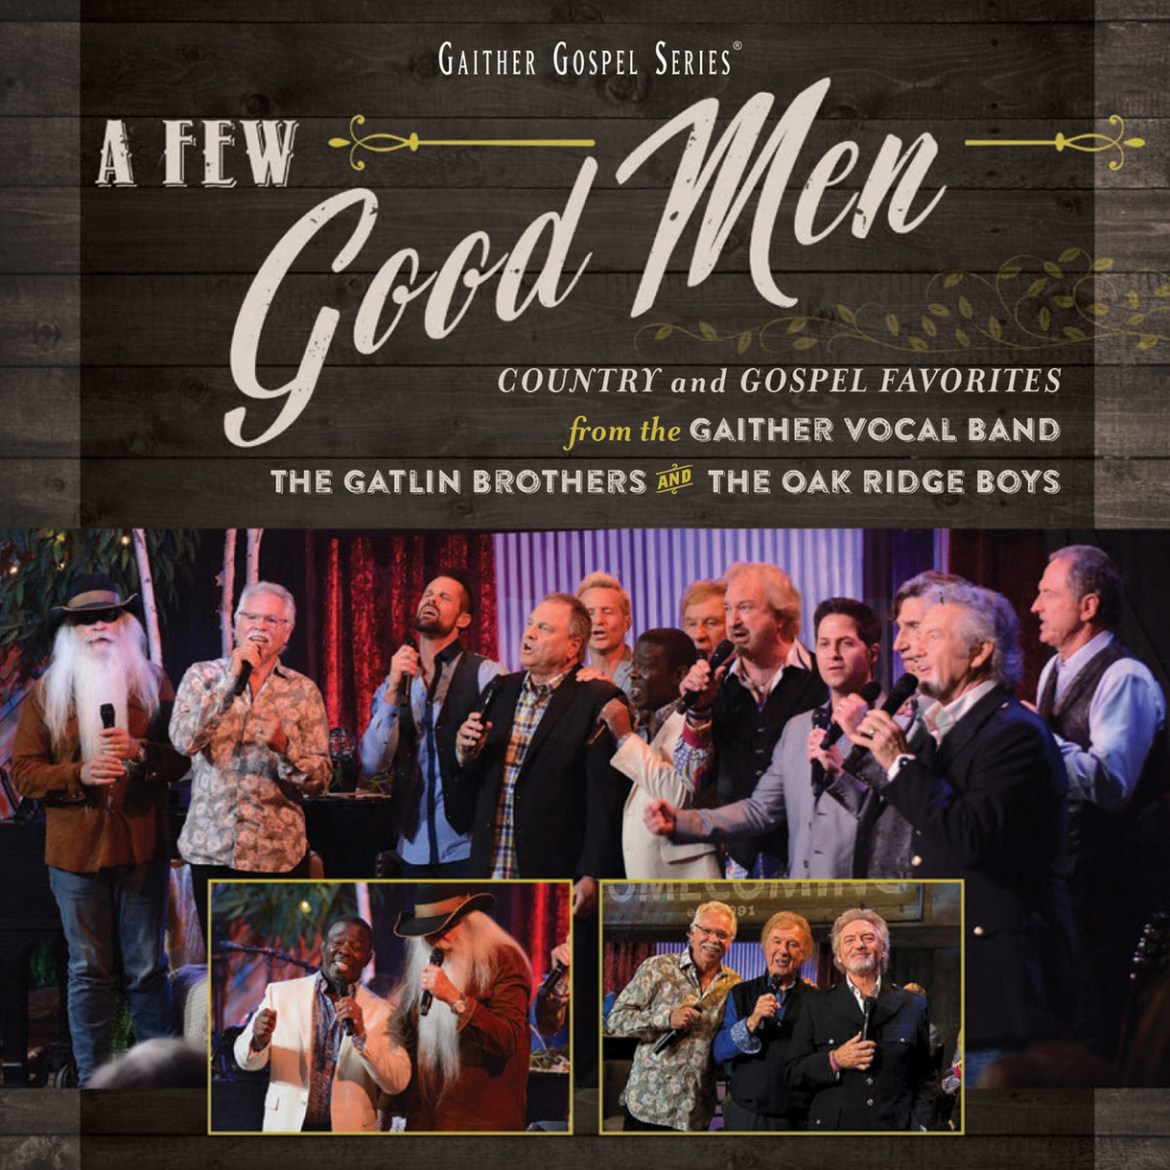 Country and Gospel Music Icons the Gaither Vocal Band, The Gatlin Brothers and The Oak Ridge Boys Join Together for All-new CD and DVD Recordings